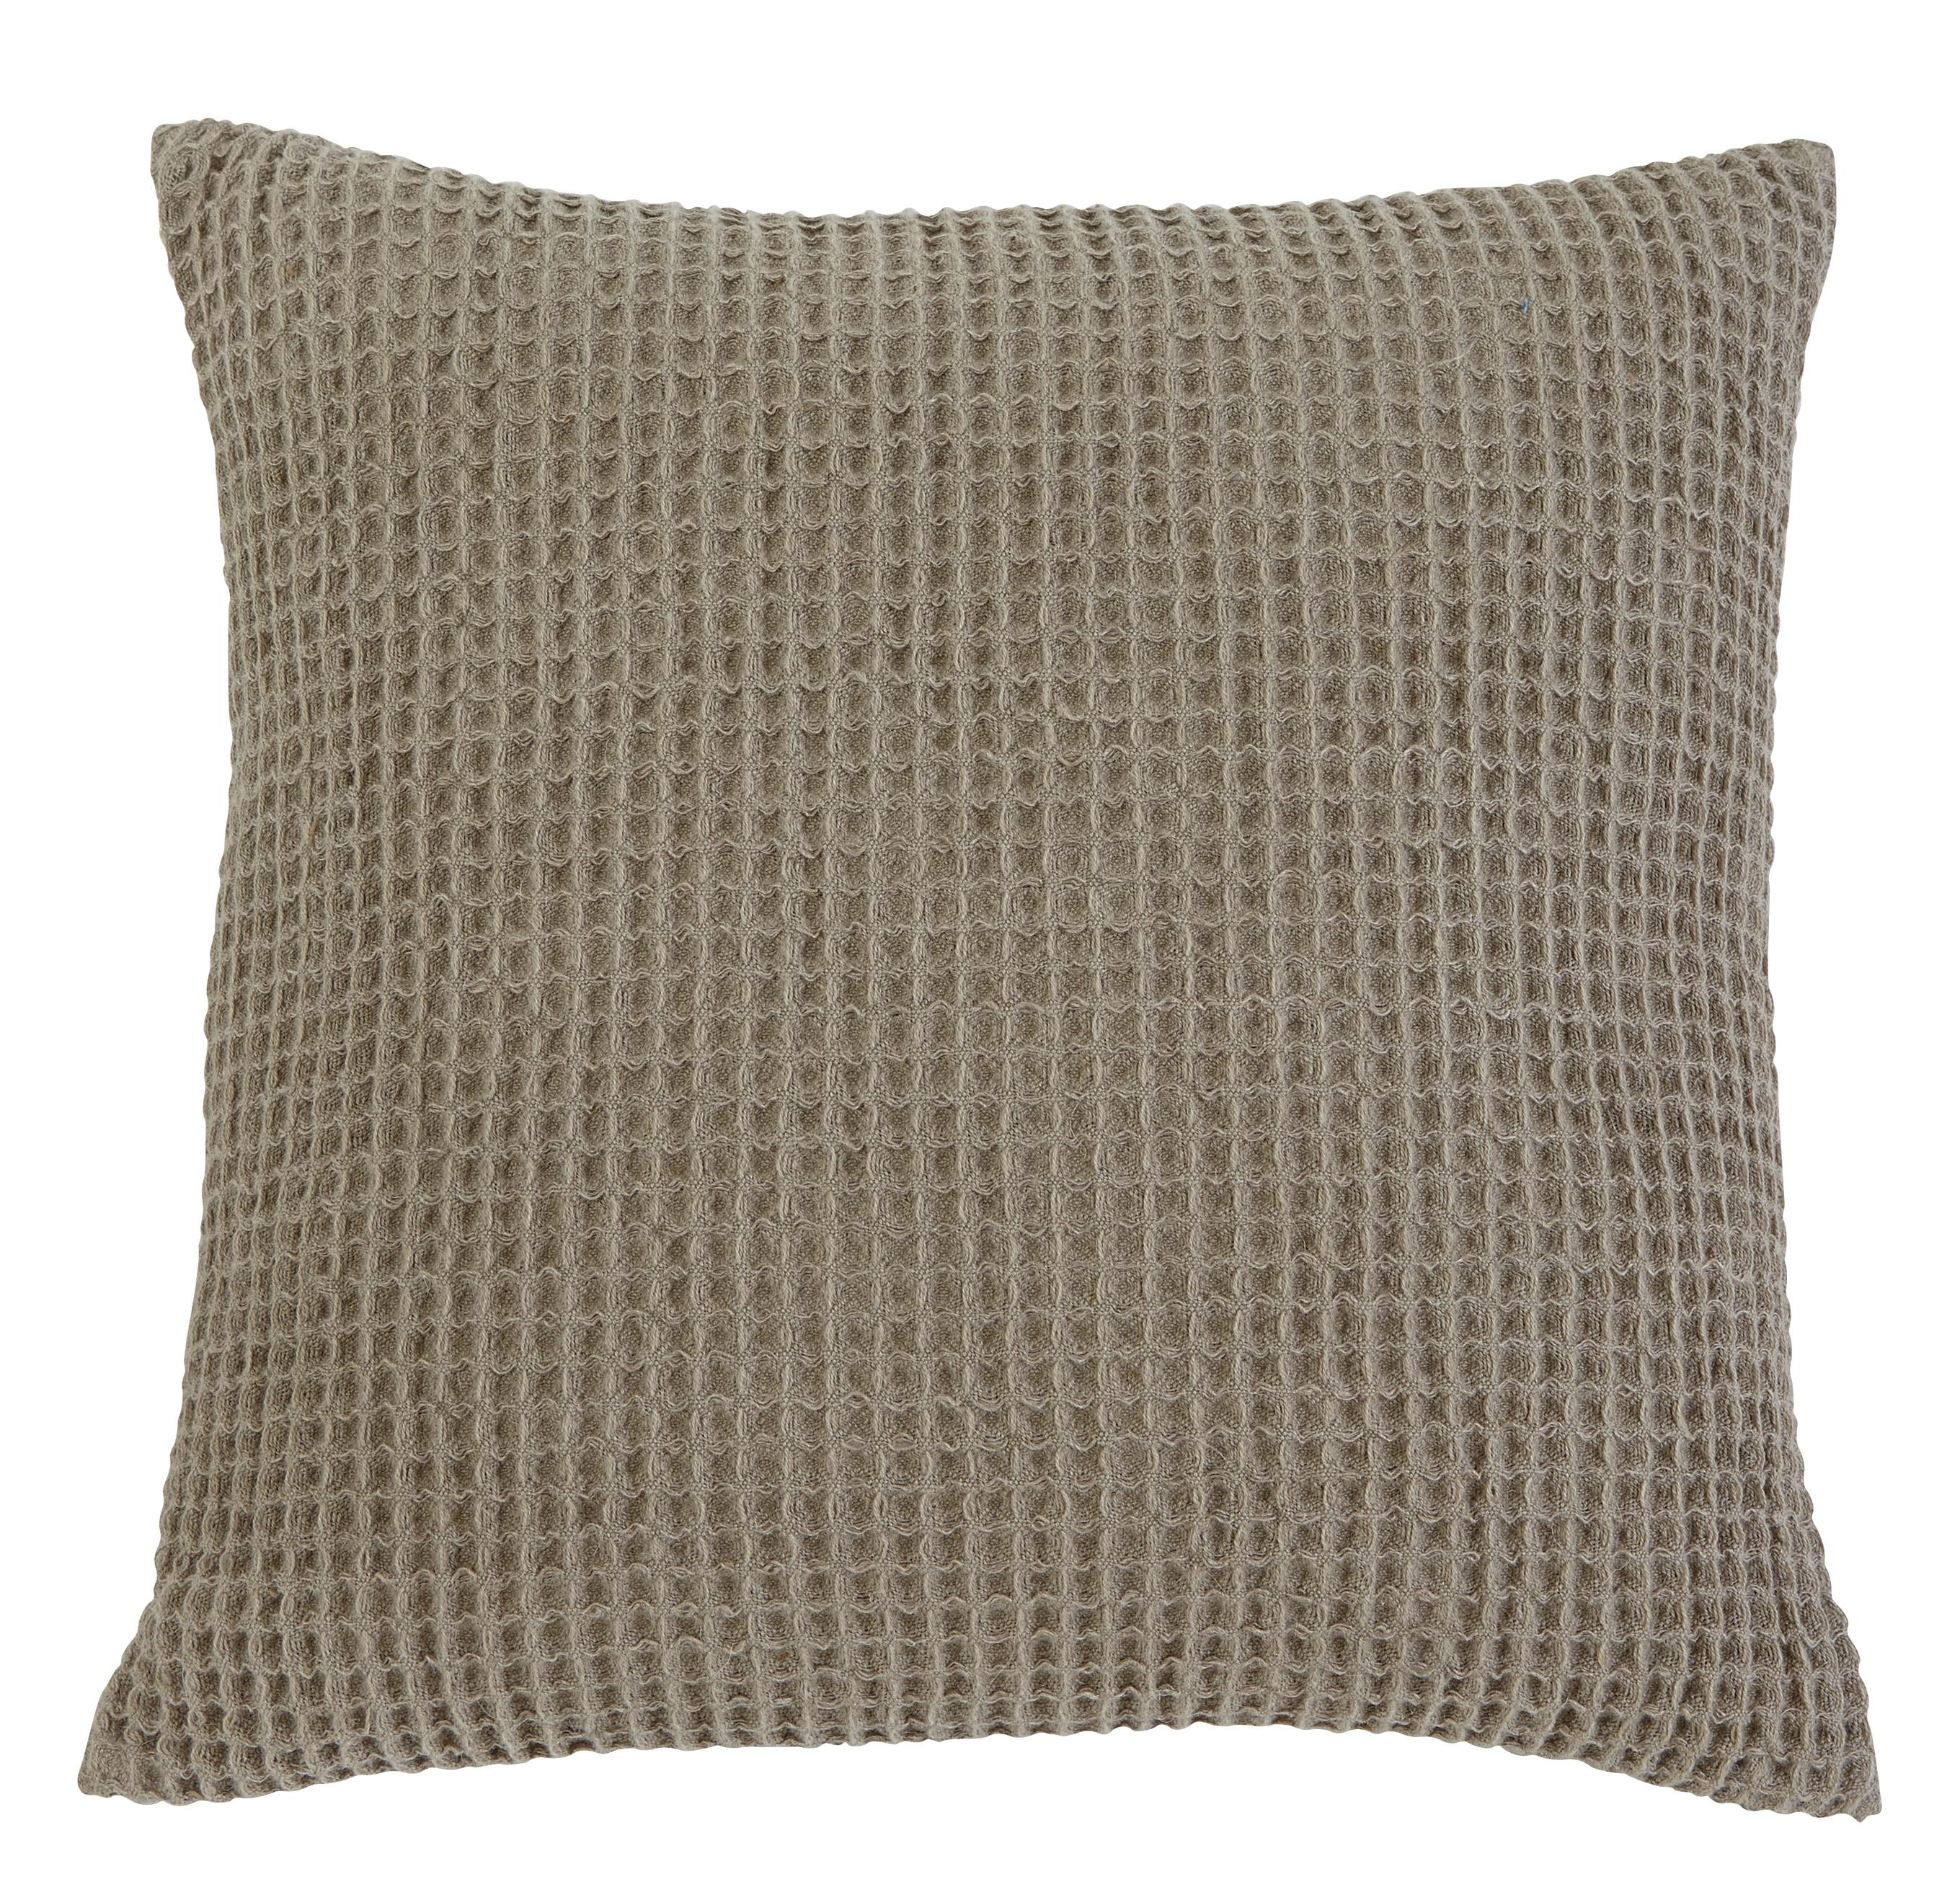 Signature Design by Ashley Pillows Patterned - Brown Pillow Cover - Item Number: A1000380P